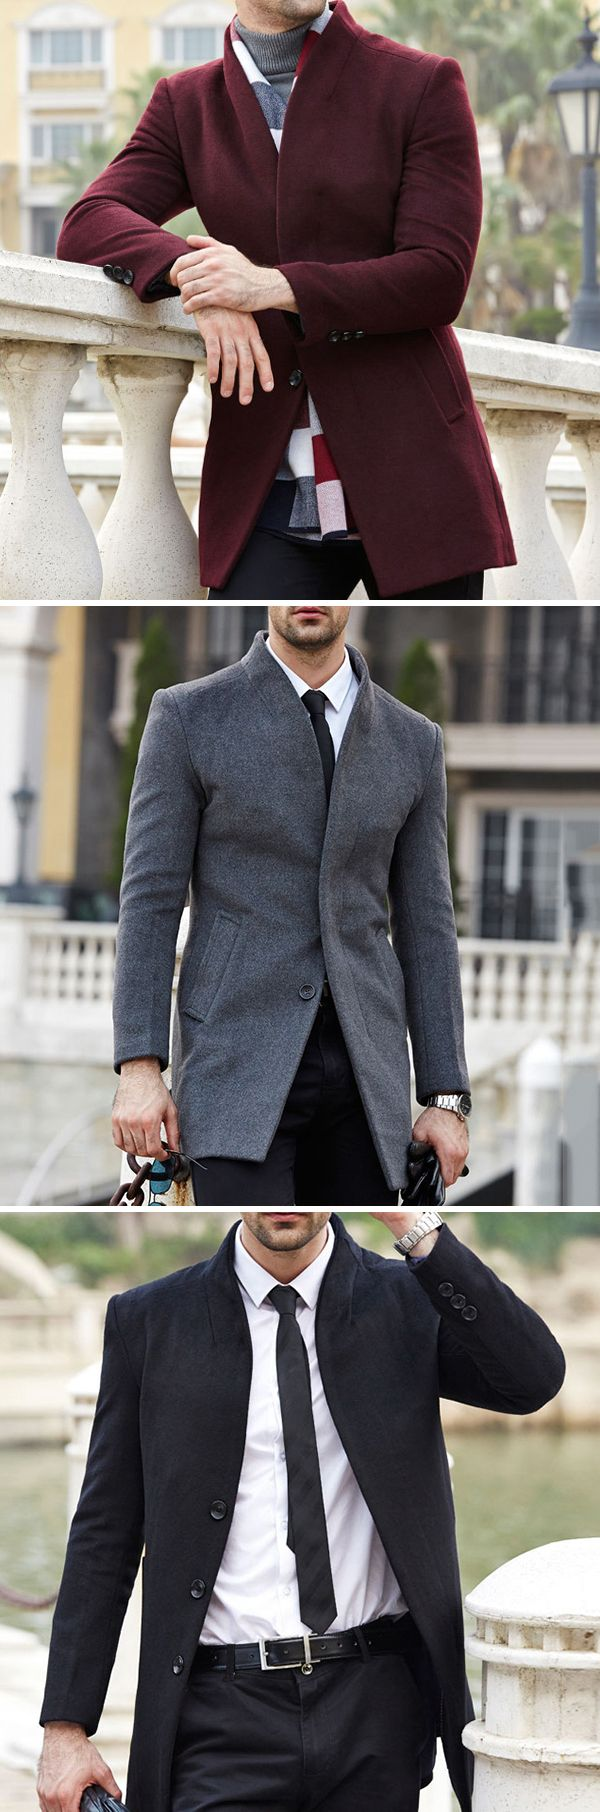 US$79.69 + Free shipping. Size: M~XL. Color: Black, Gray, Wine Red, Navy. Fall in love with casual and business style! Mens Wool Mid-long Business Casual Trench Coat Autumn Winter Slim Fit Jacket. #mens #jackets #business